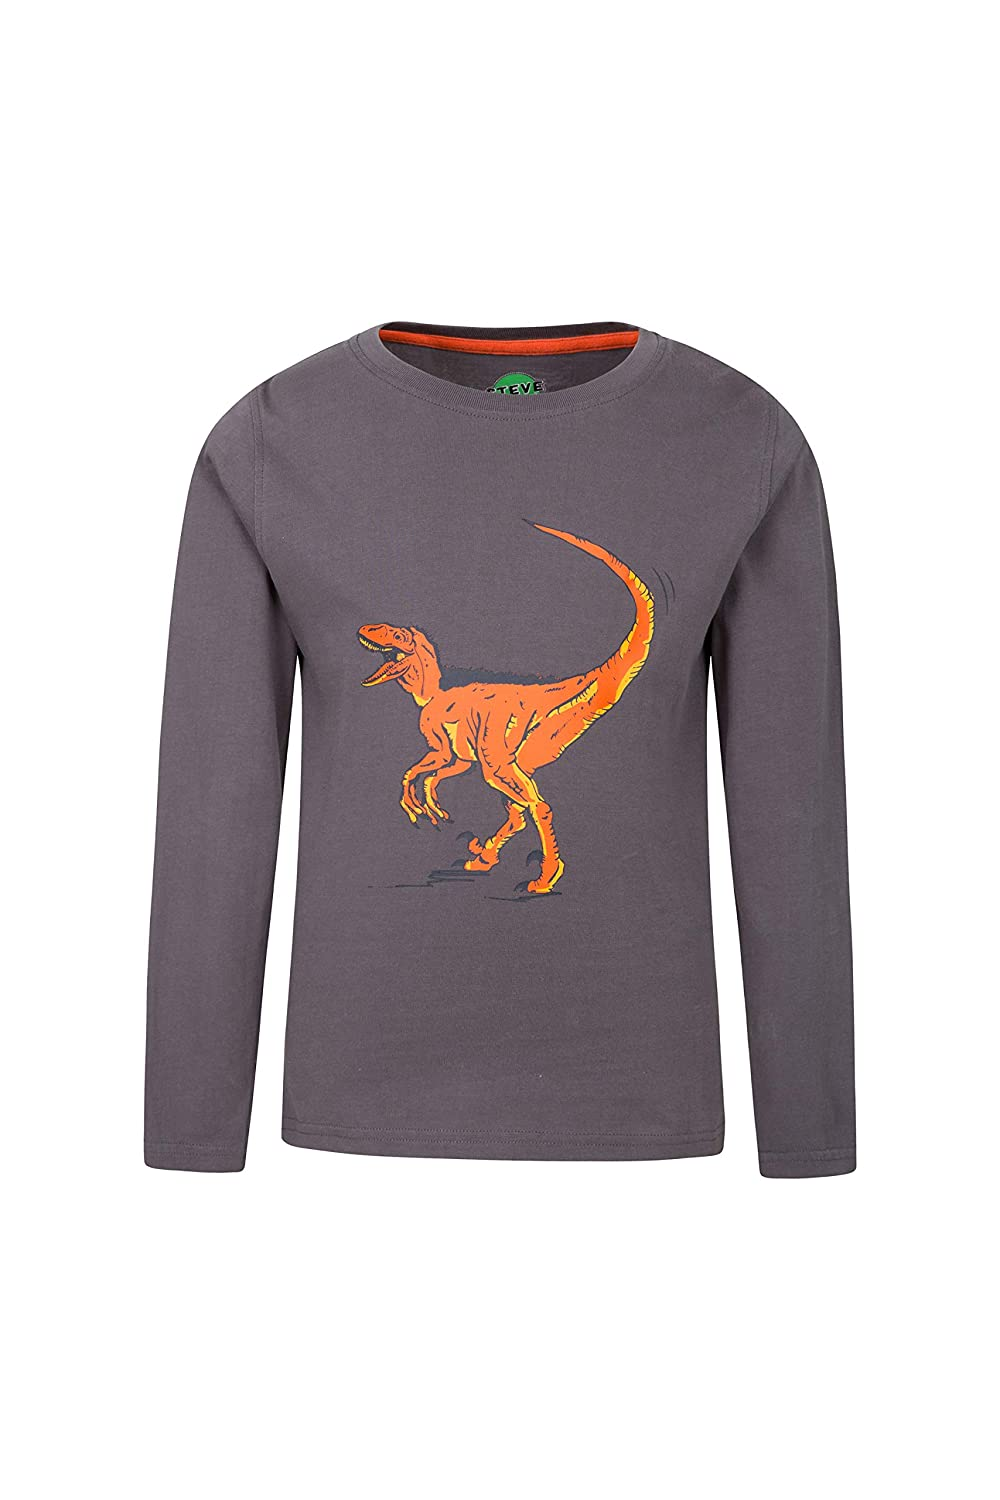 Mountain Warehouse Steve Backshall Dinosaur Kids Tee - 100% Cotton, Breathable Childrens T-Shirt, Lightweight Cute Top, Funny Print Tee - Clothing for Active Use